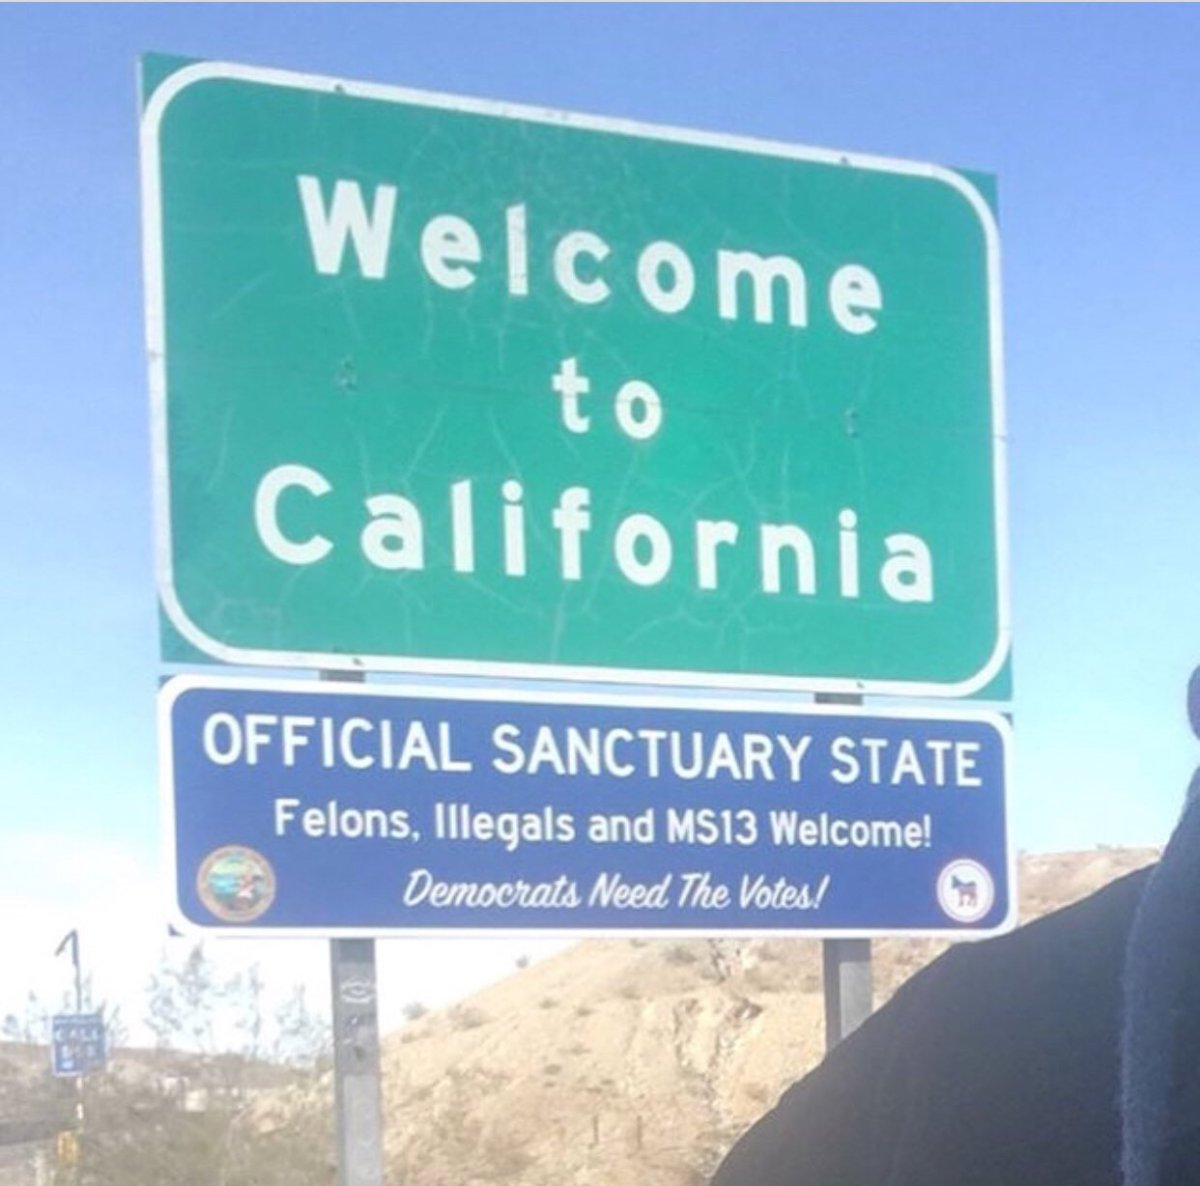 California: Growing Threat to the American Republic